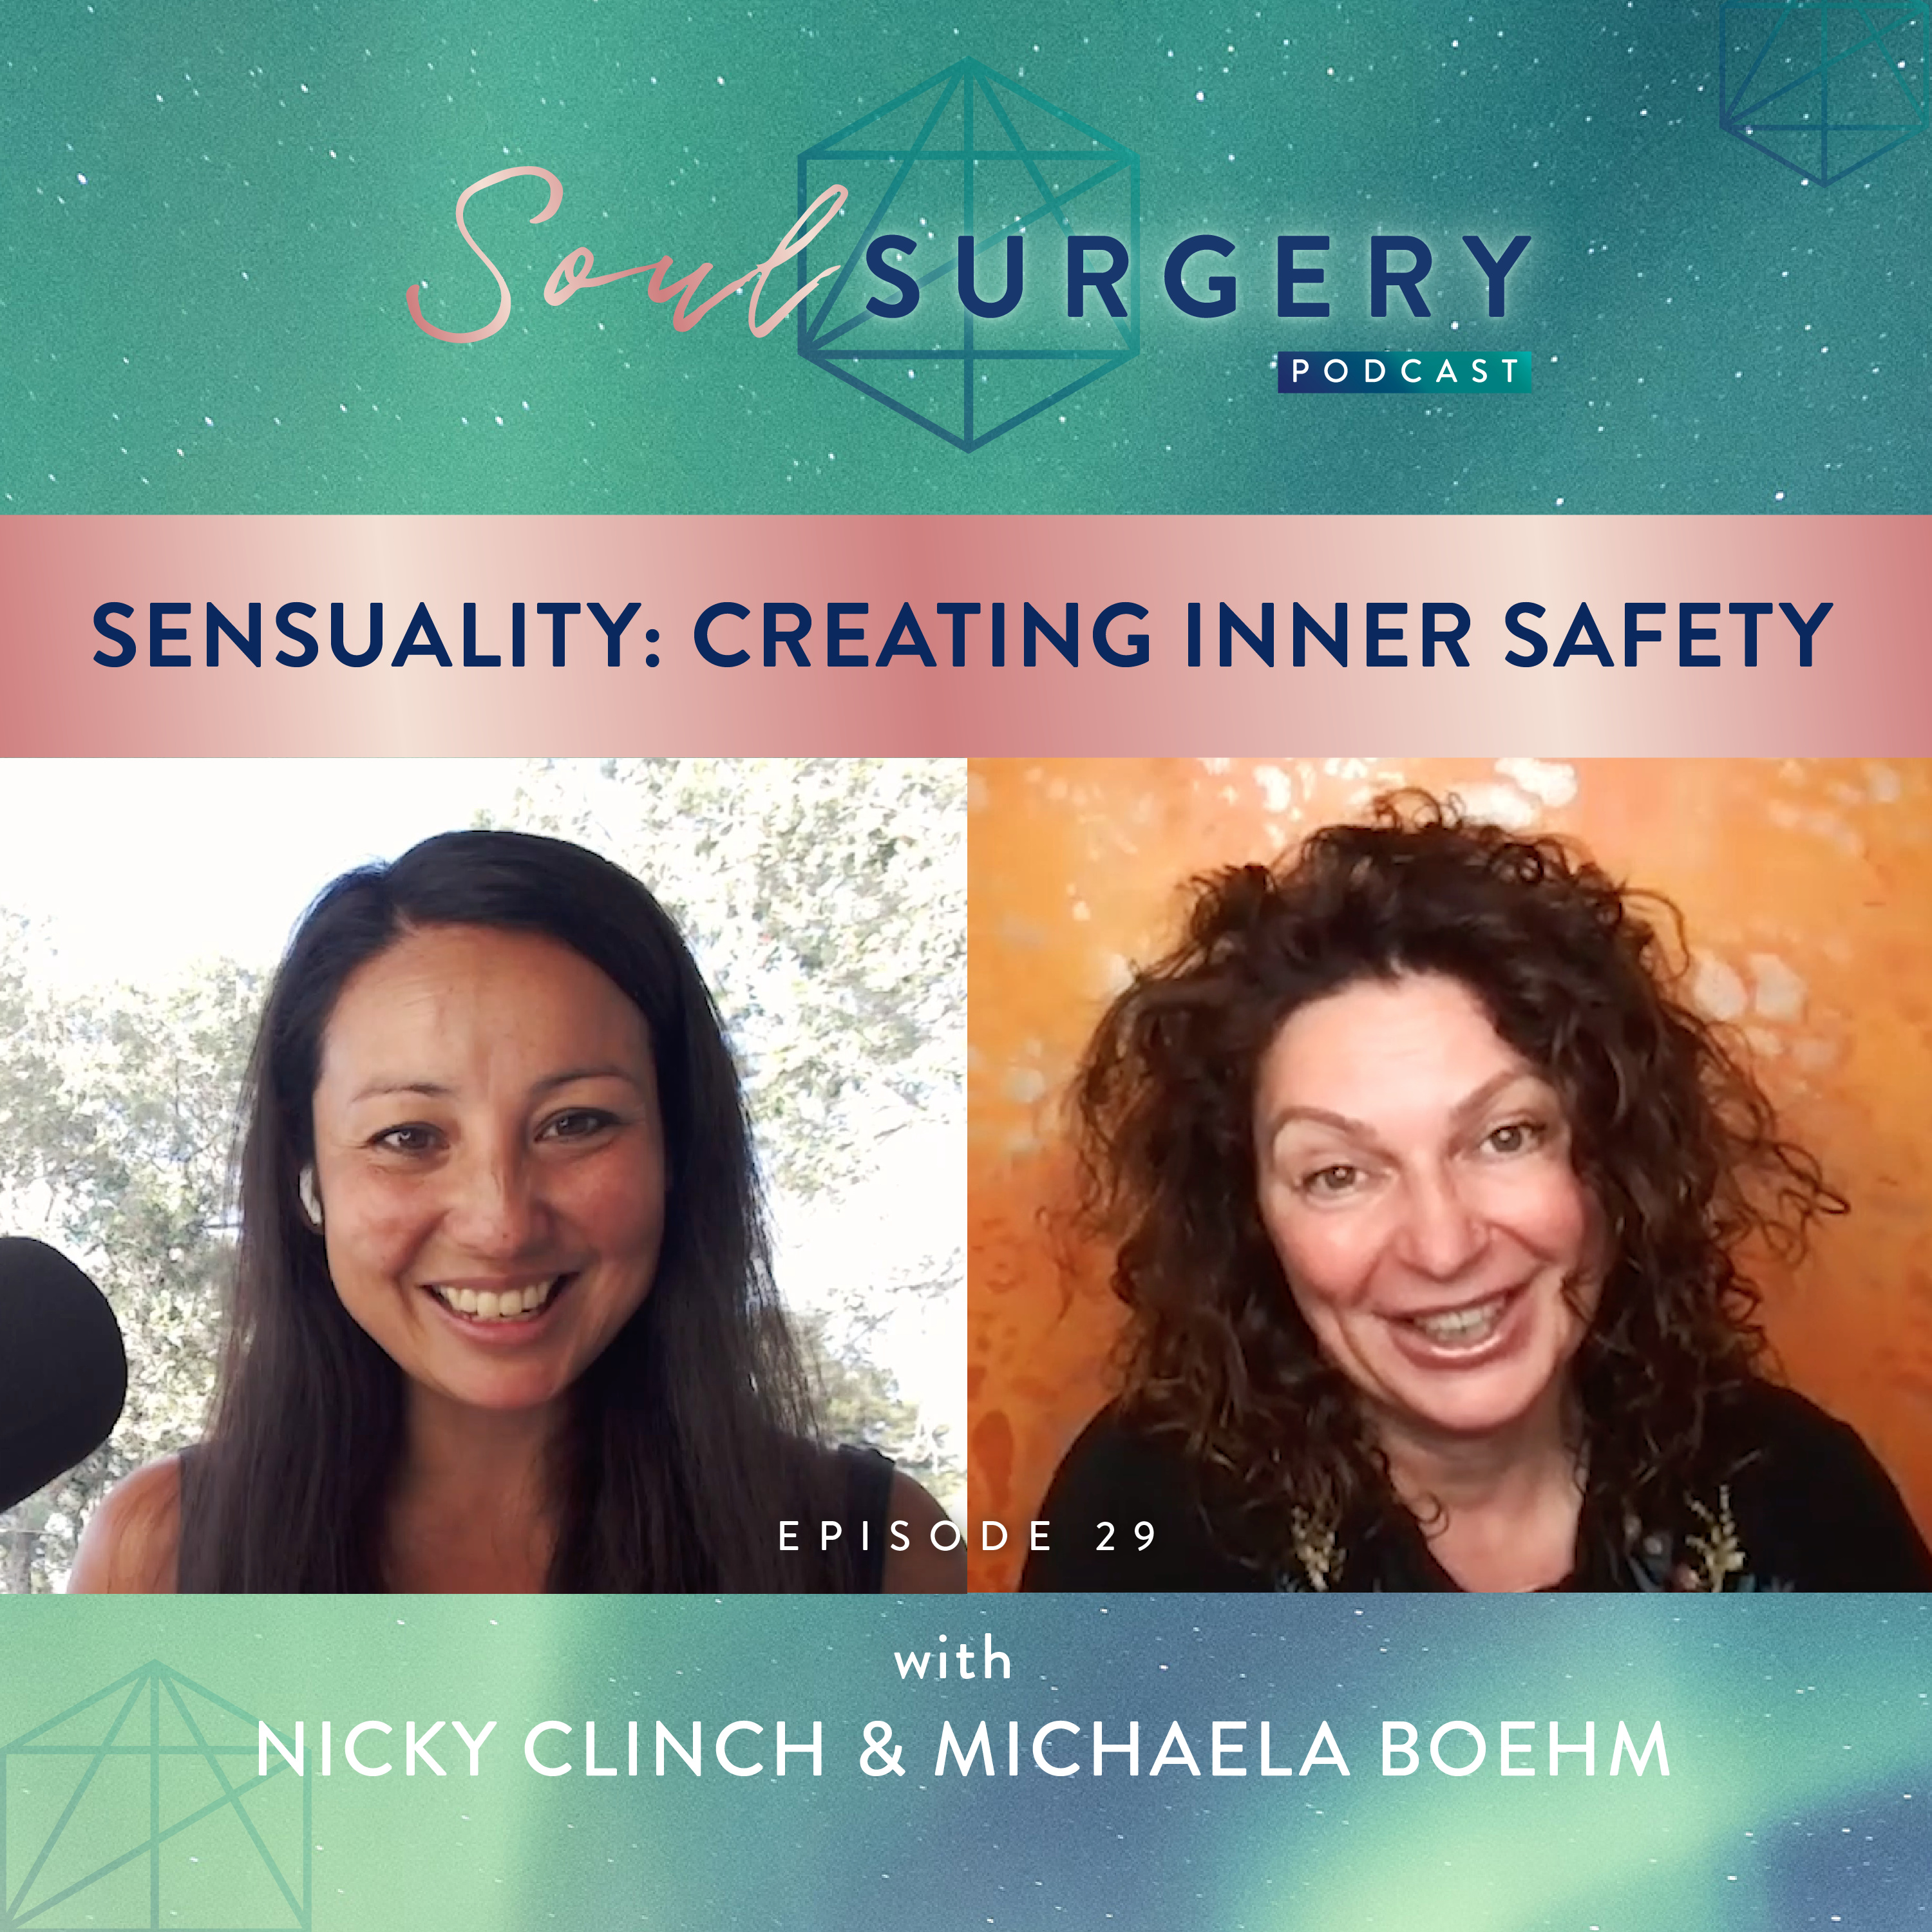 Sensuality: Creating Inner Safety with Michaela Boehm